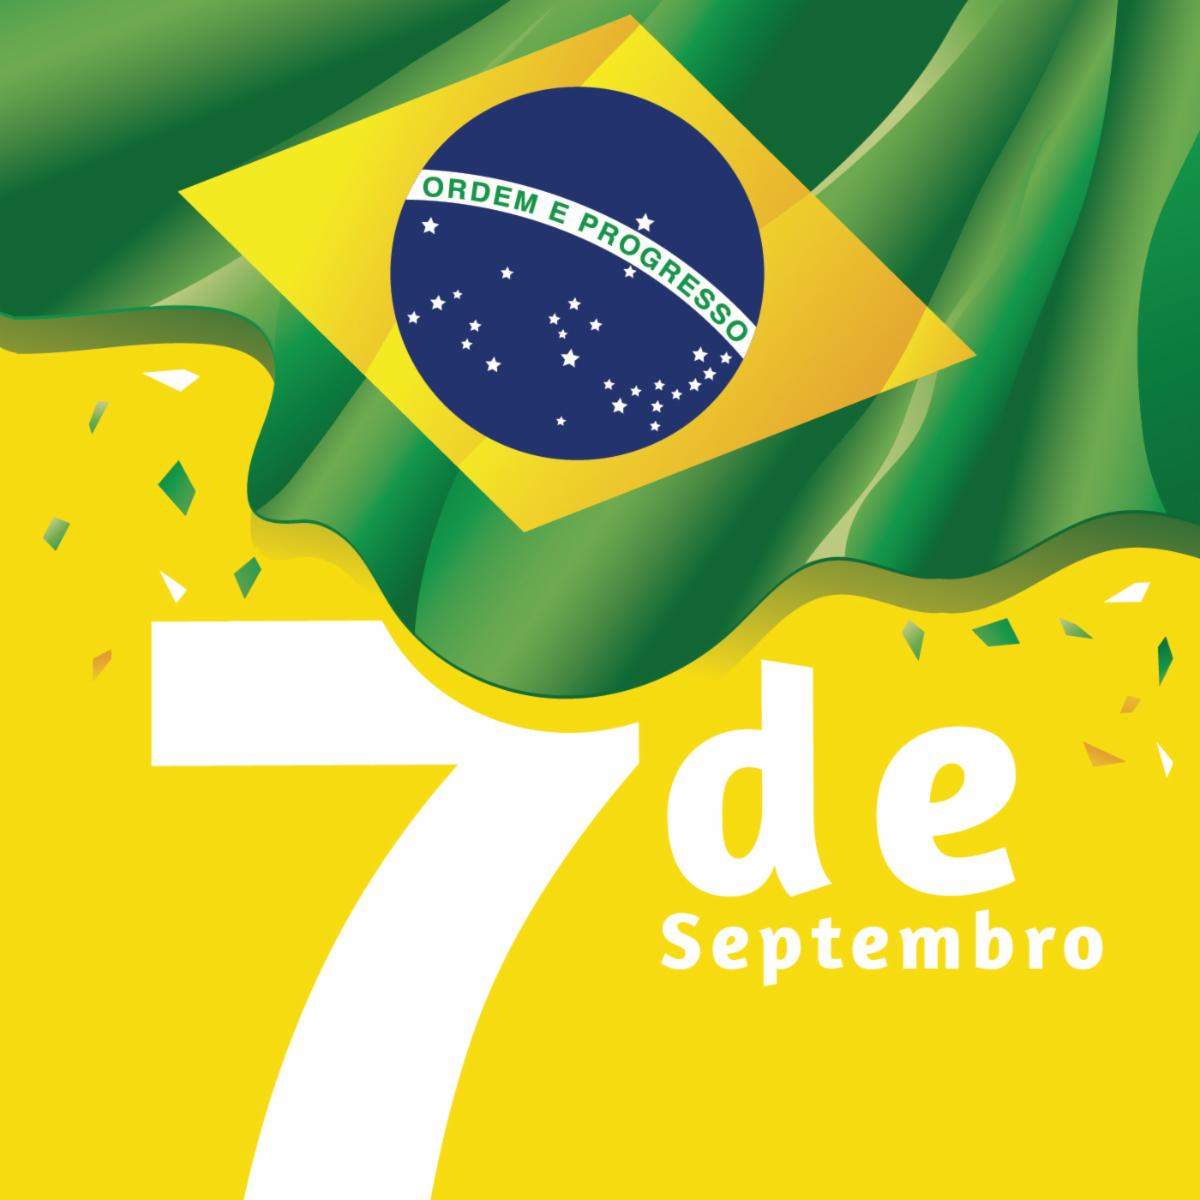 "<a href=""https://www.vecteezy.com/free-vector/brazil"">Brazil Vectors by Vecteezy</a>"